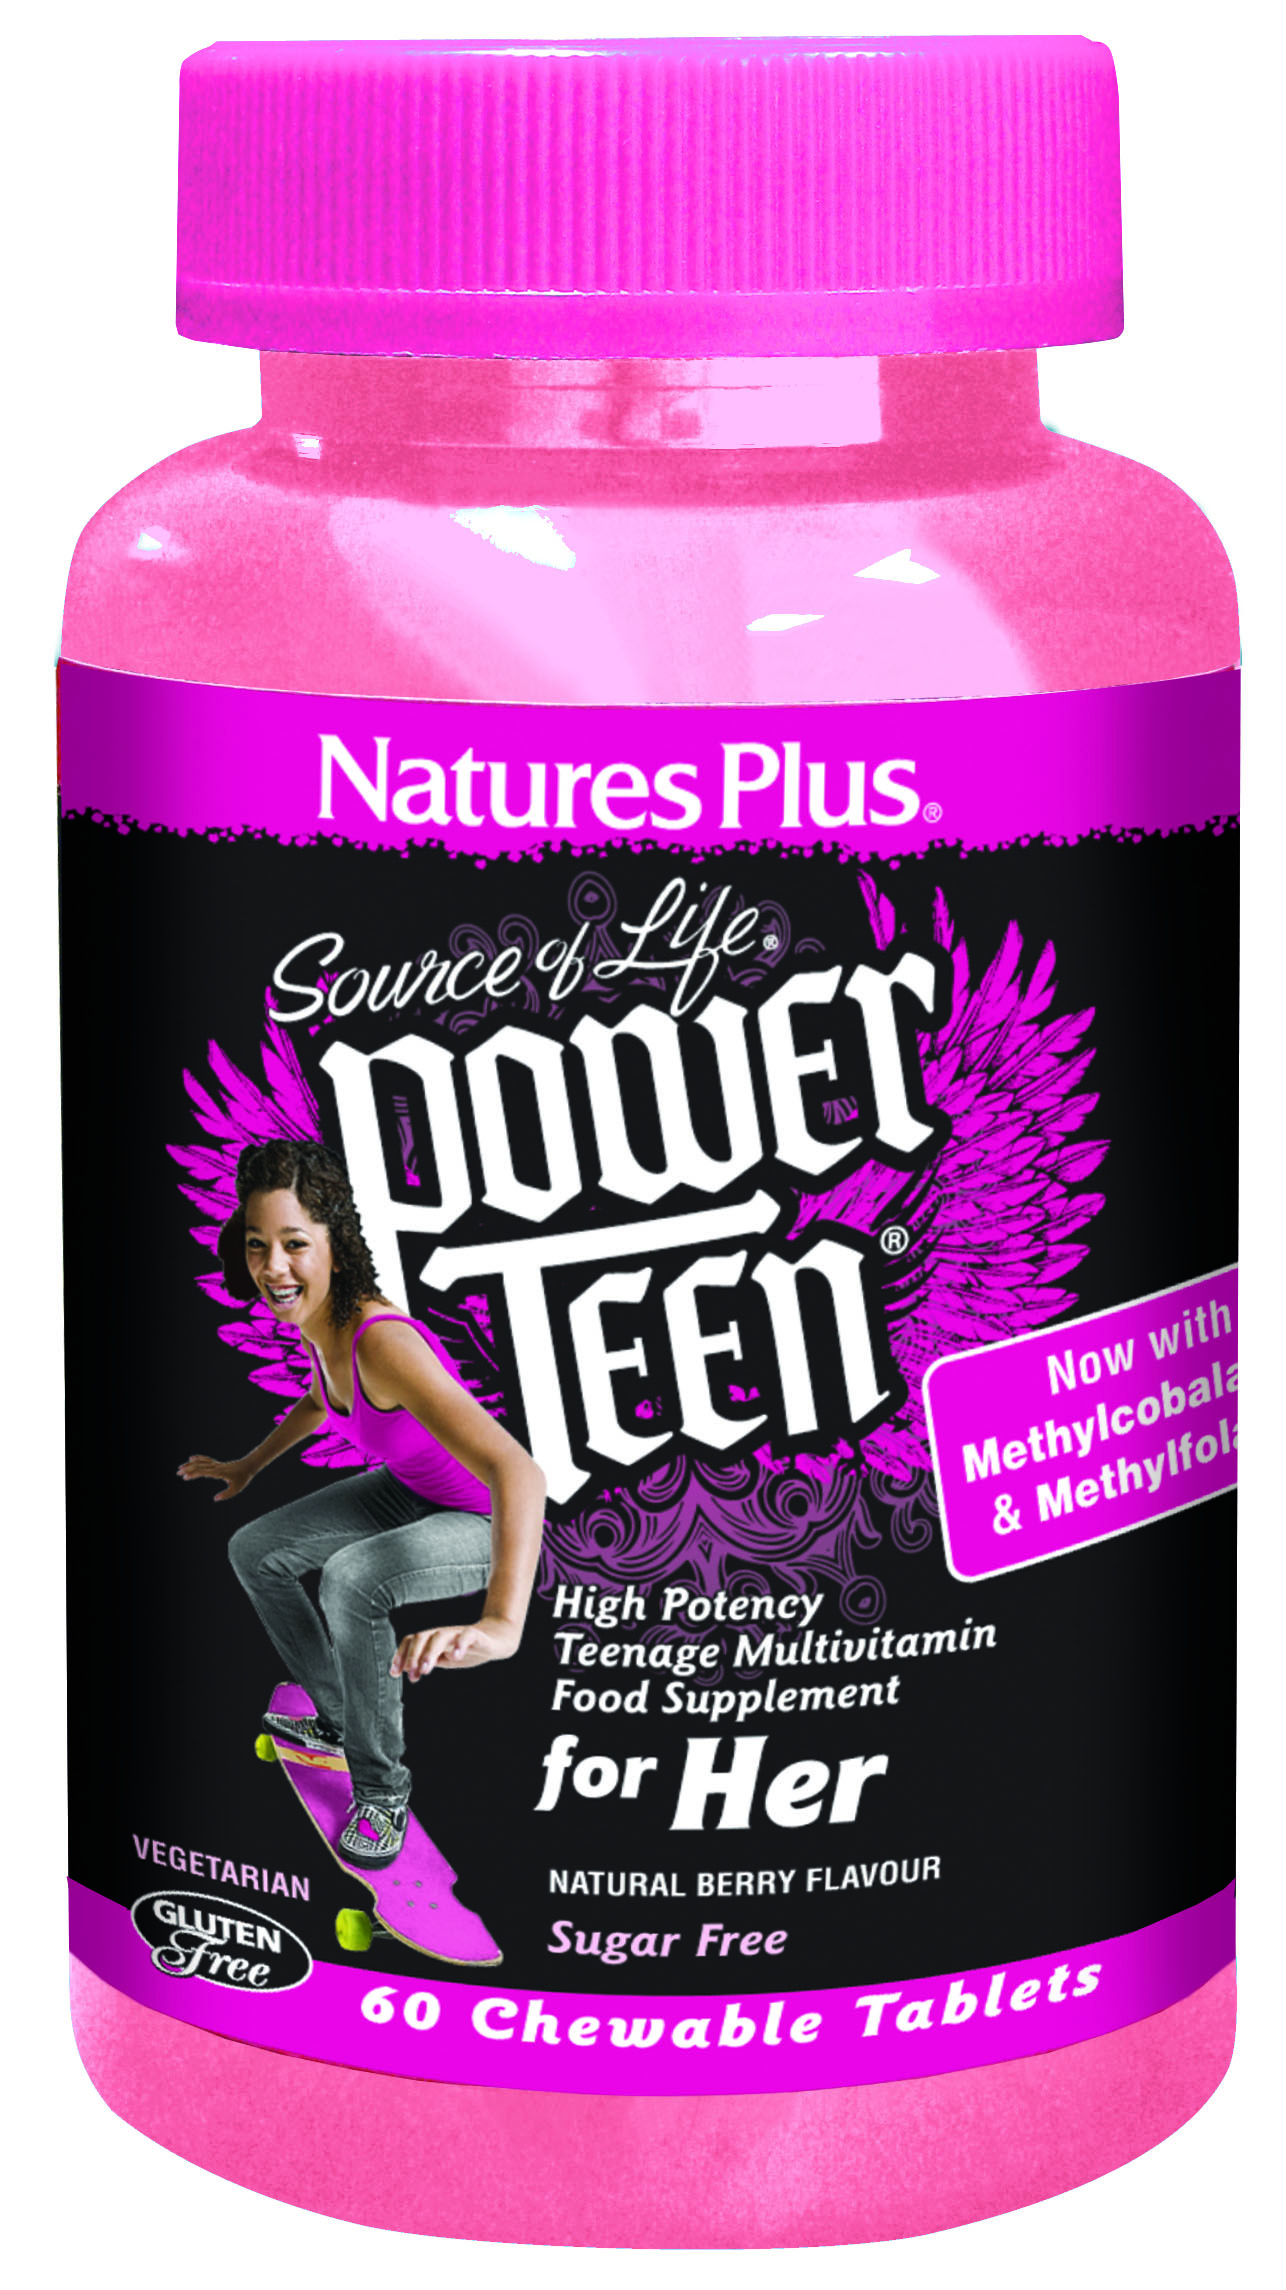 Source of Life Power Teen for Her 60's